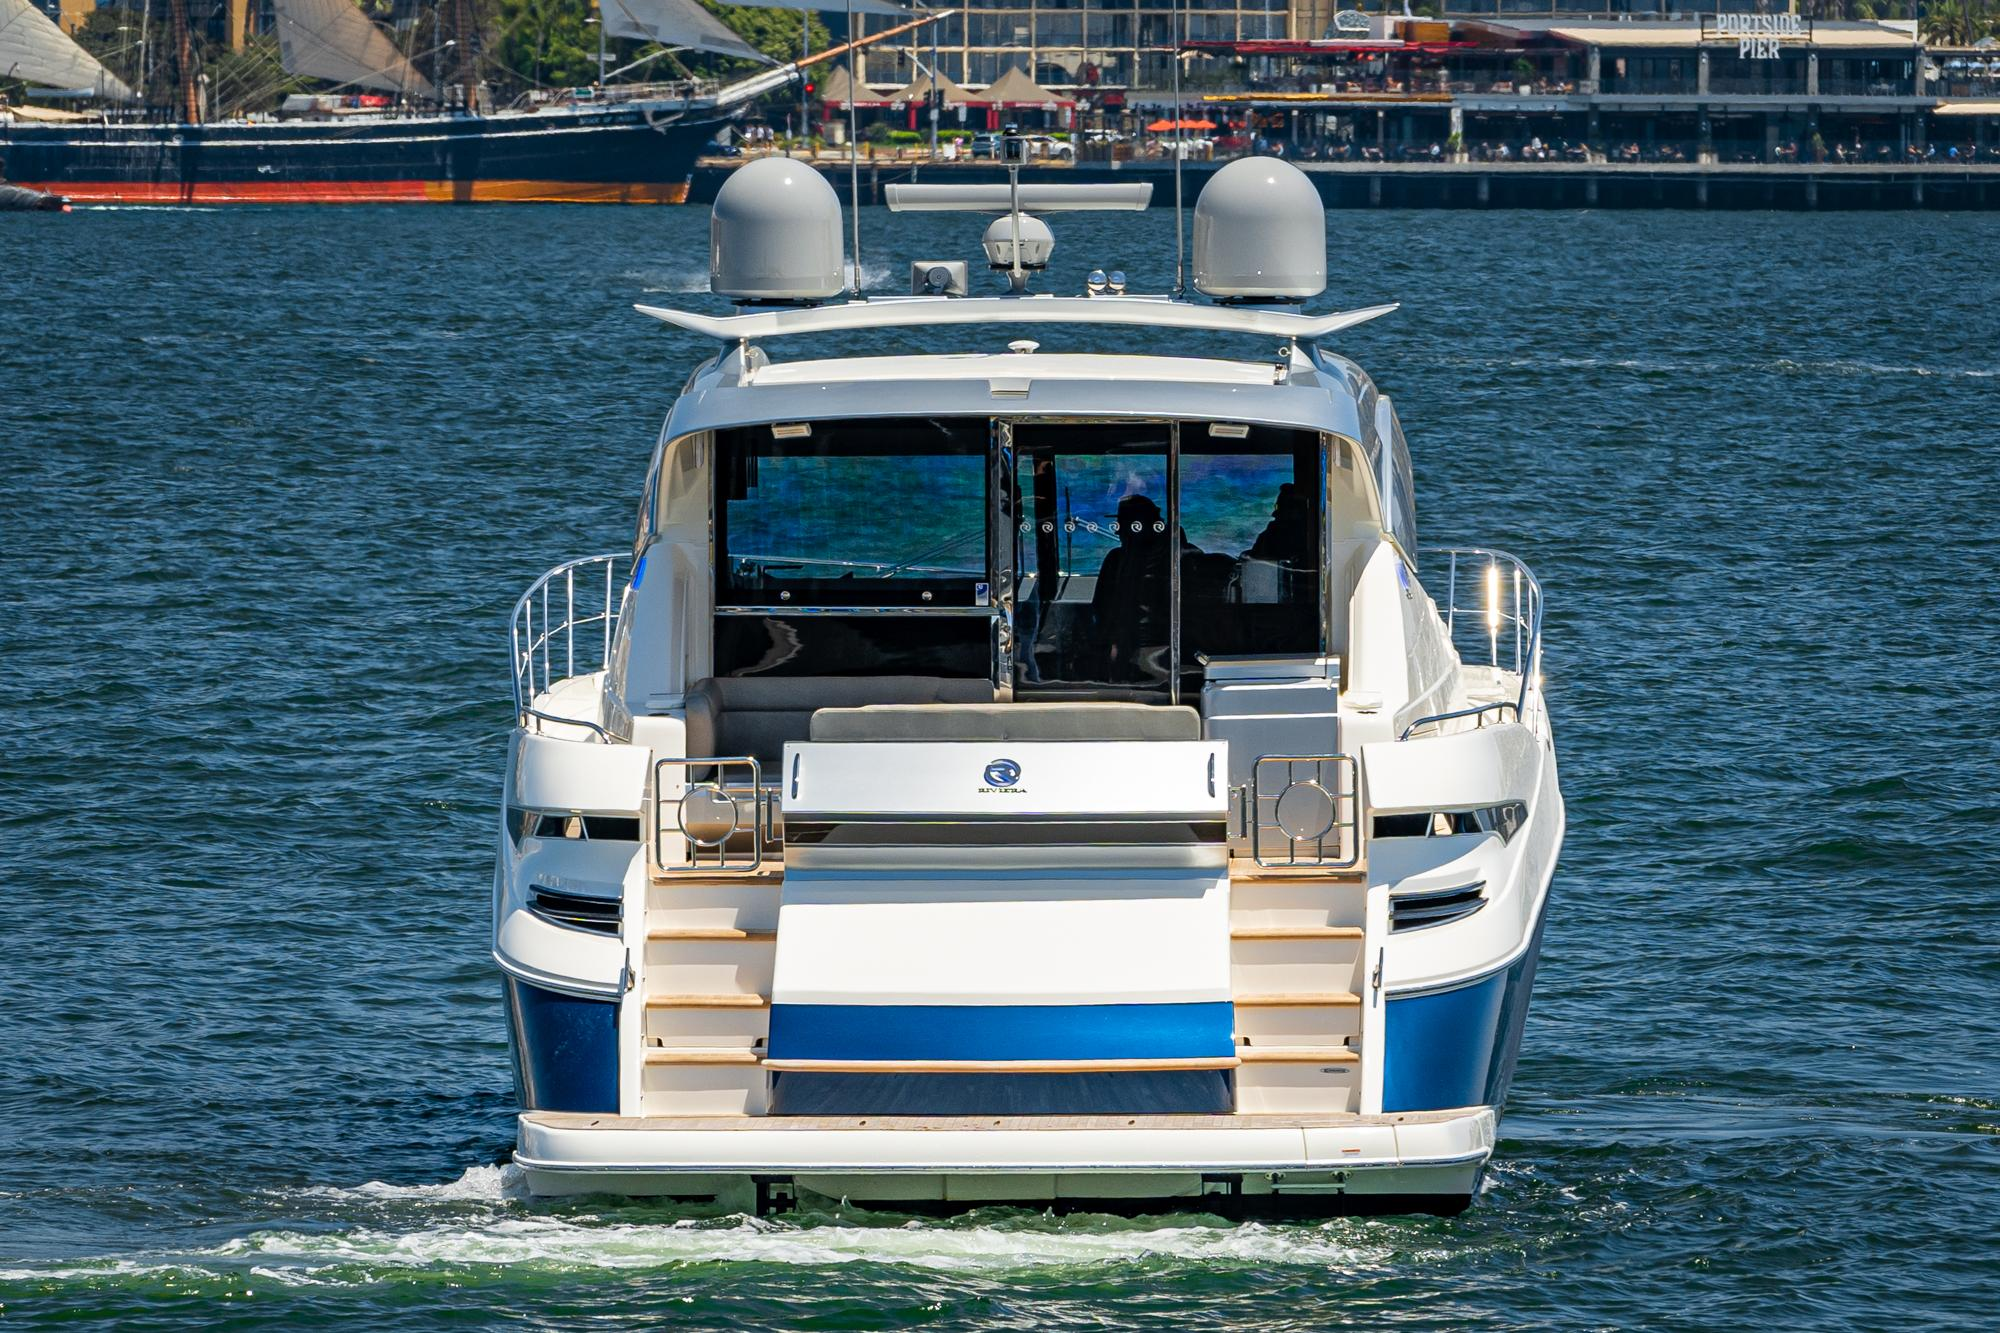 2022 Riviera 6000 Sport Yacht #R107 inventory image at Sun Country Coastal in Newport Beach